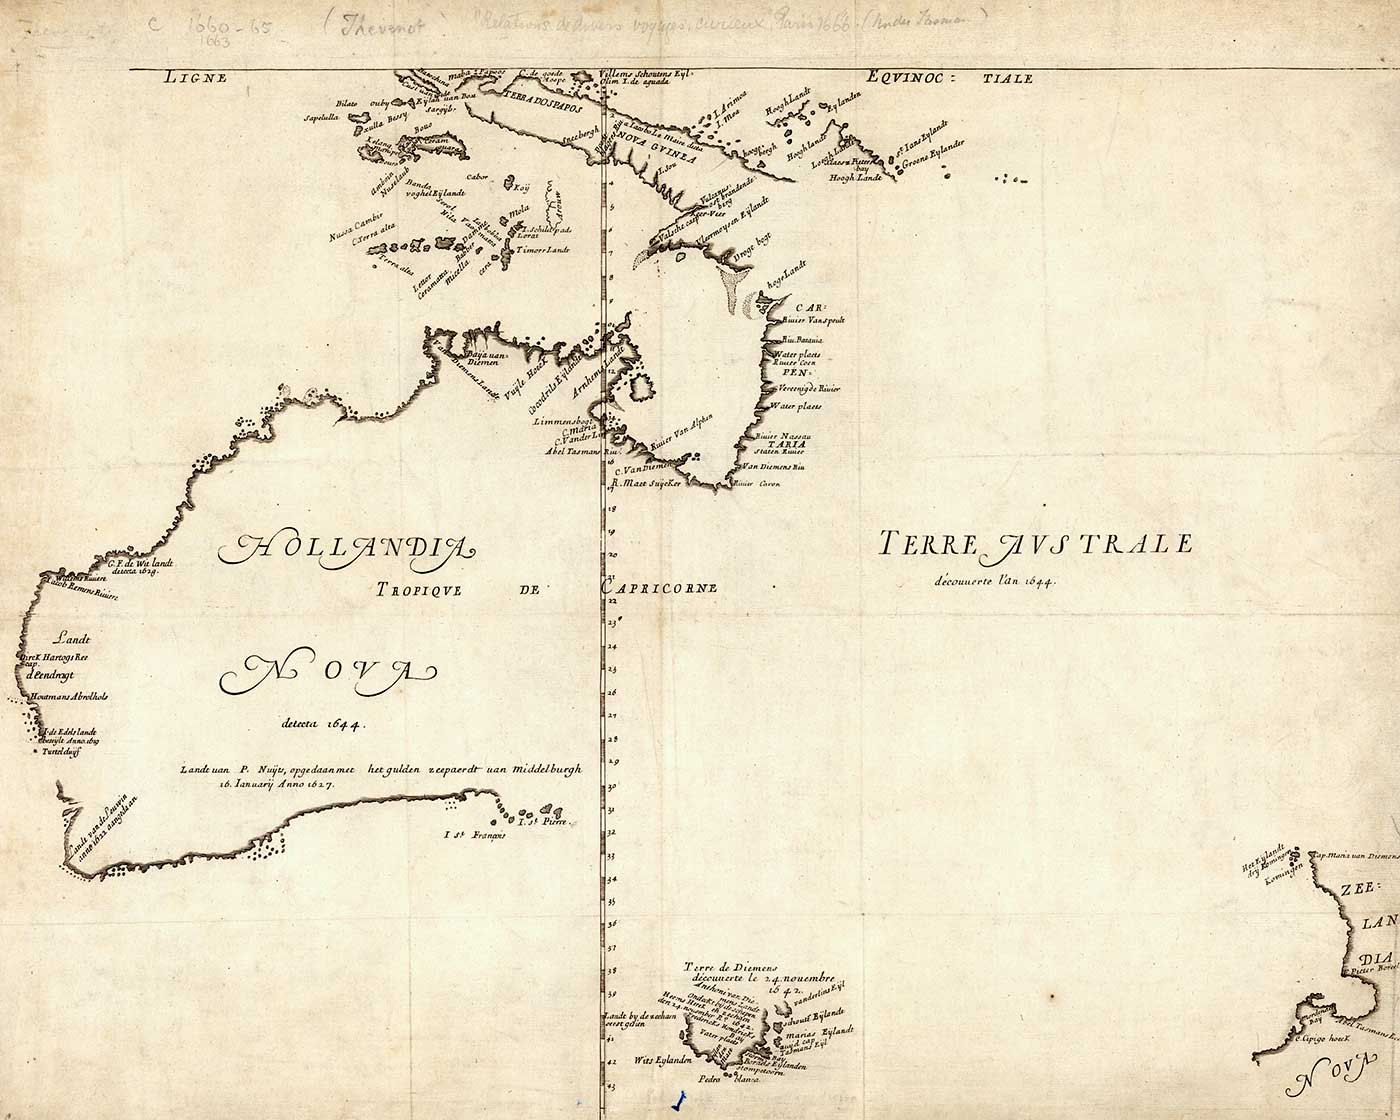 Early map showing most of what we know as Tasmania and the west coast of what we now know as Australia, marked as 'Hollandia Nova'. The eastern coast is blank, marked 'Terre Autrale'.